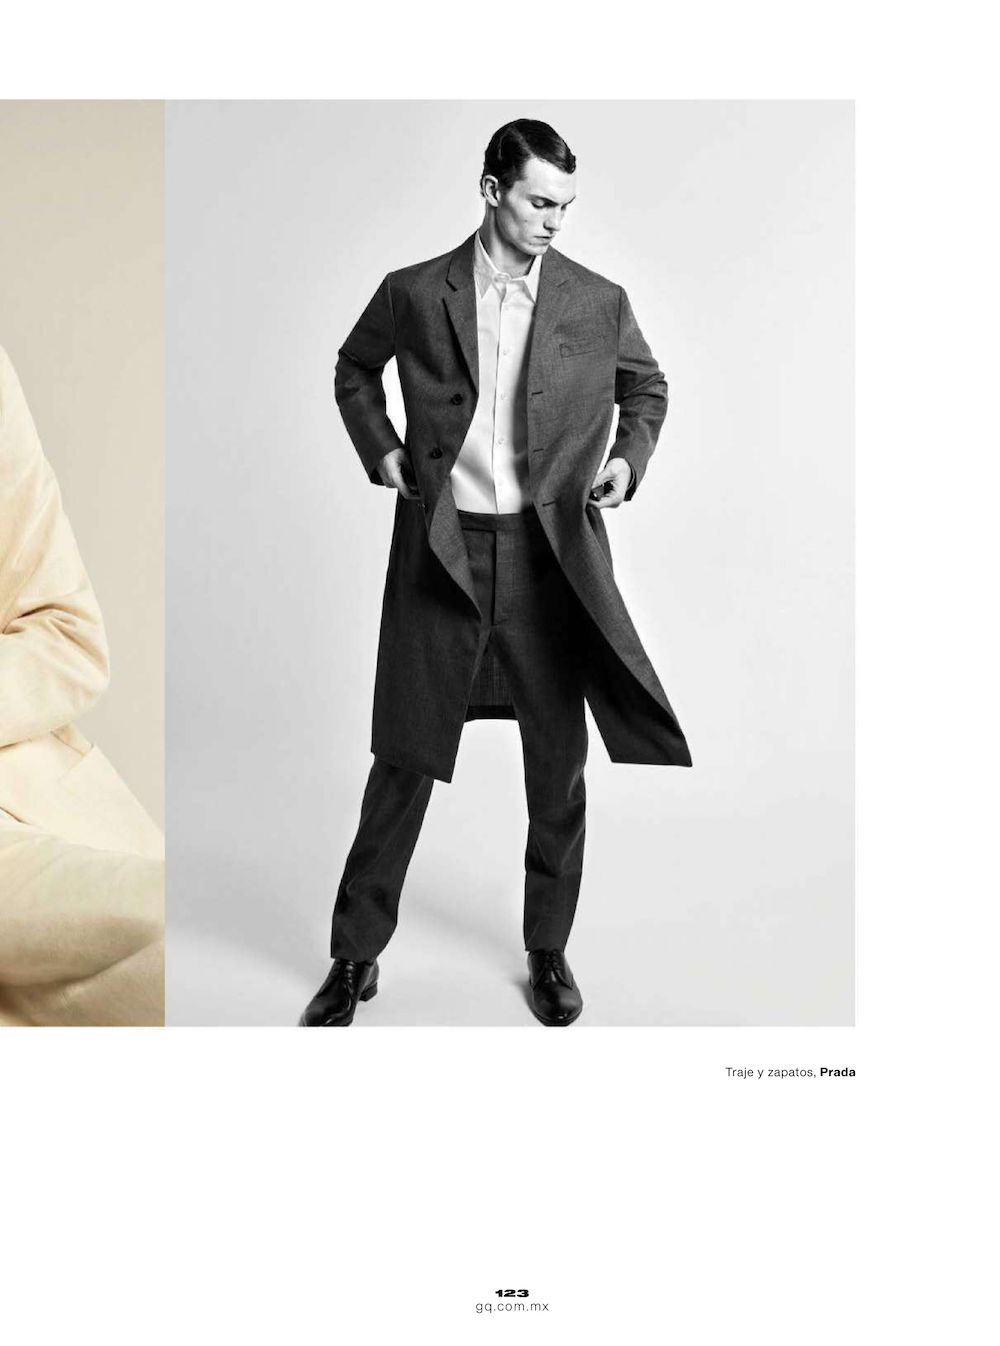 Luc Defont by Joseph Degbadjo for GQ Mexico April 2021 Editorial1